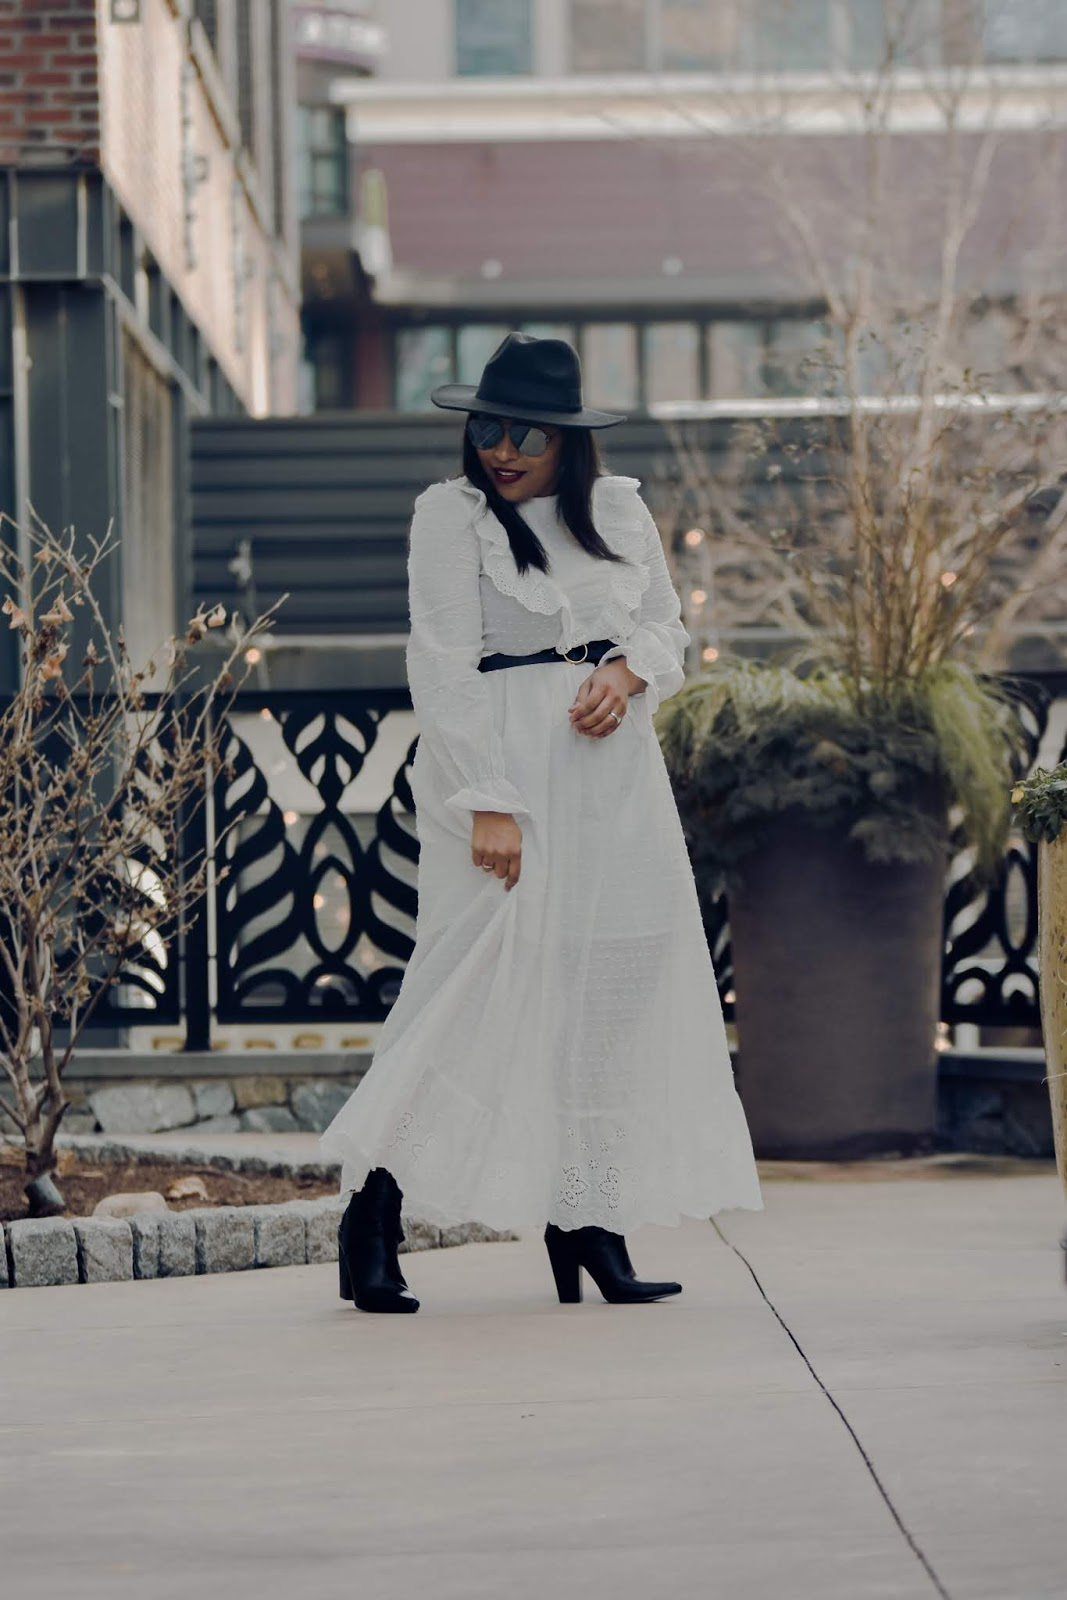 shein, shein clothign reviews, ruffle dress, winter whites, affordable outfits, chic mom outfit ideas